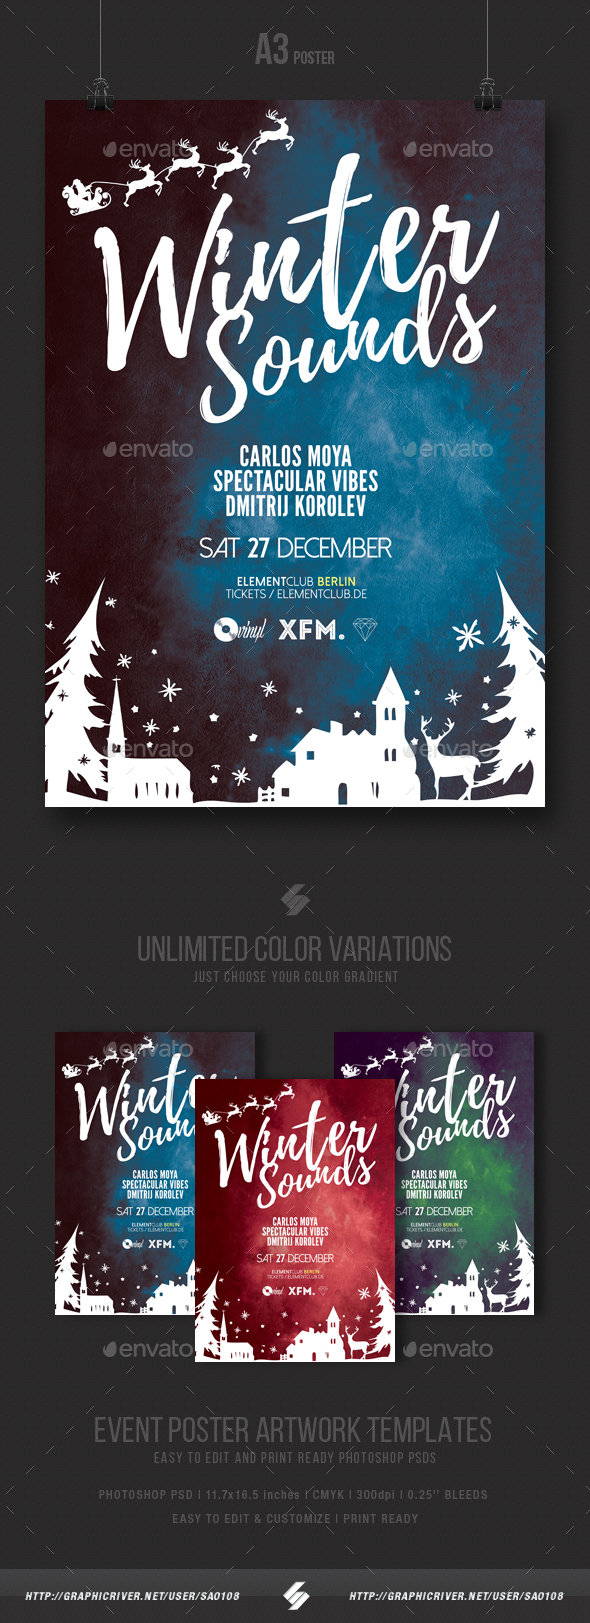 Winter Sounds - Christmas Party Flyer / Poster Template A3